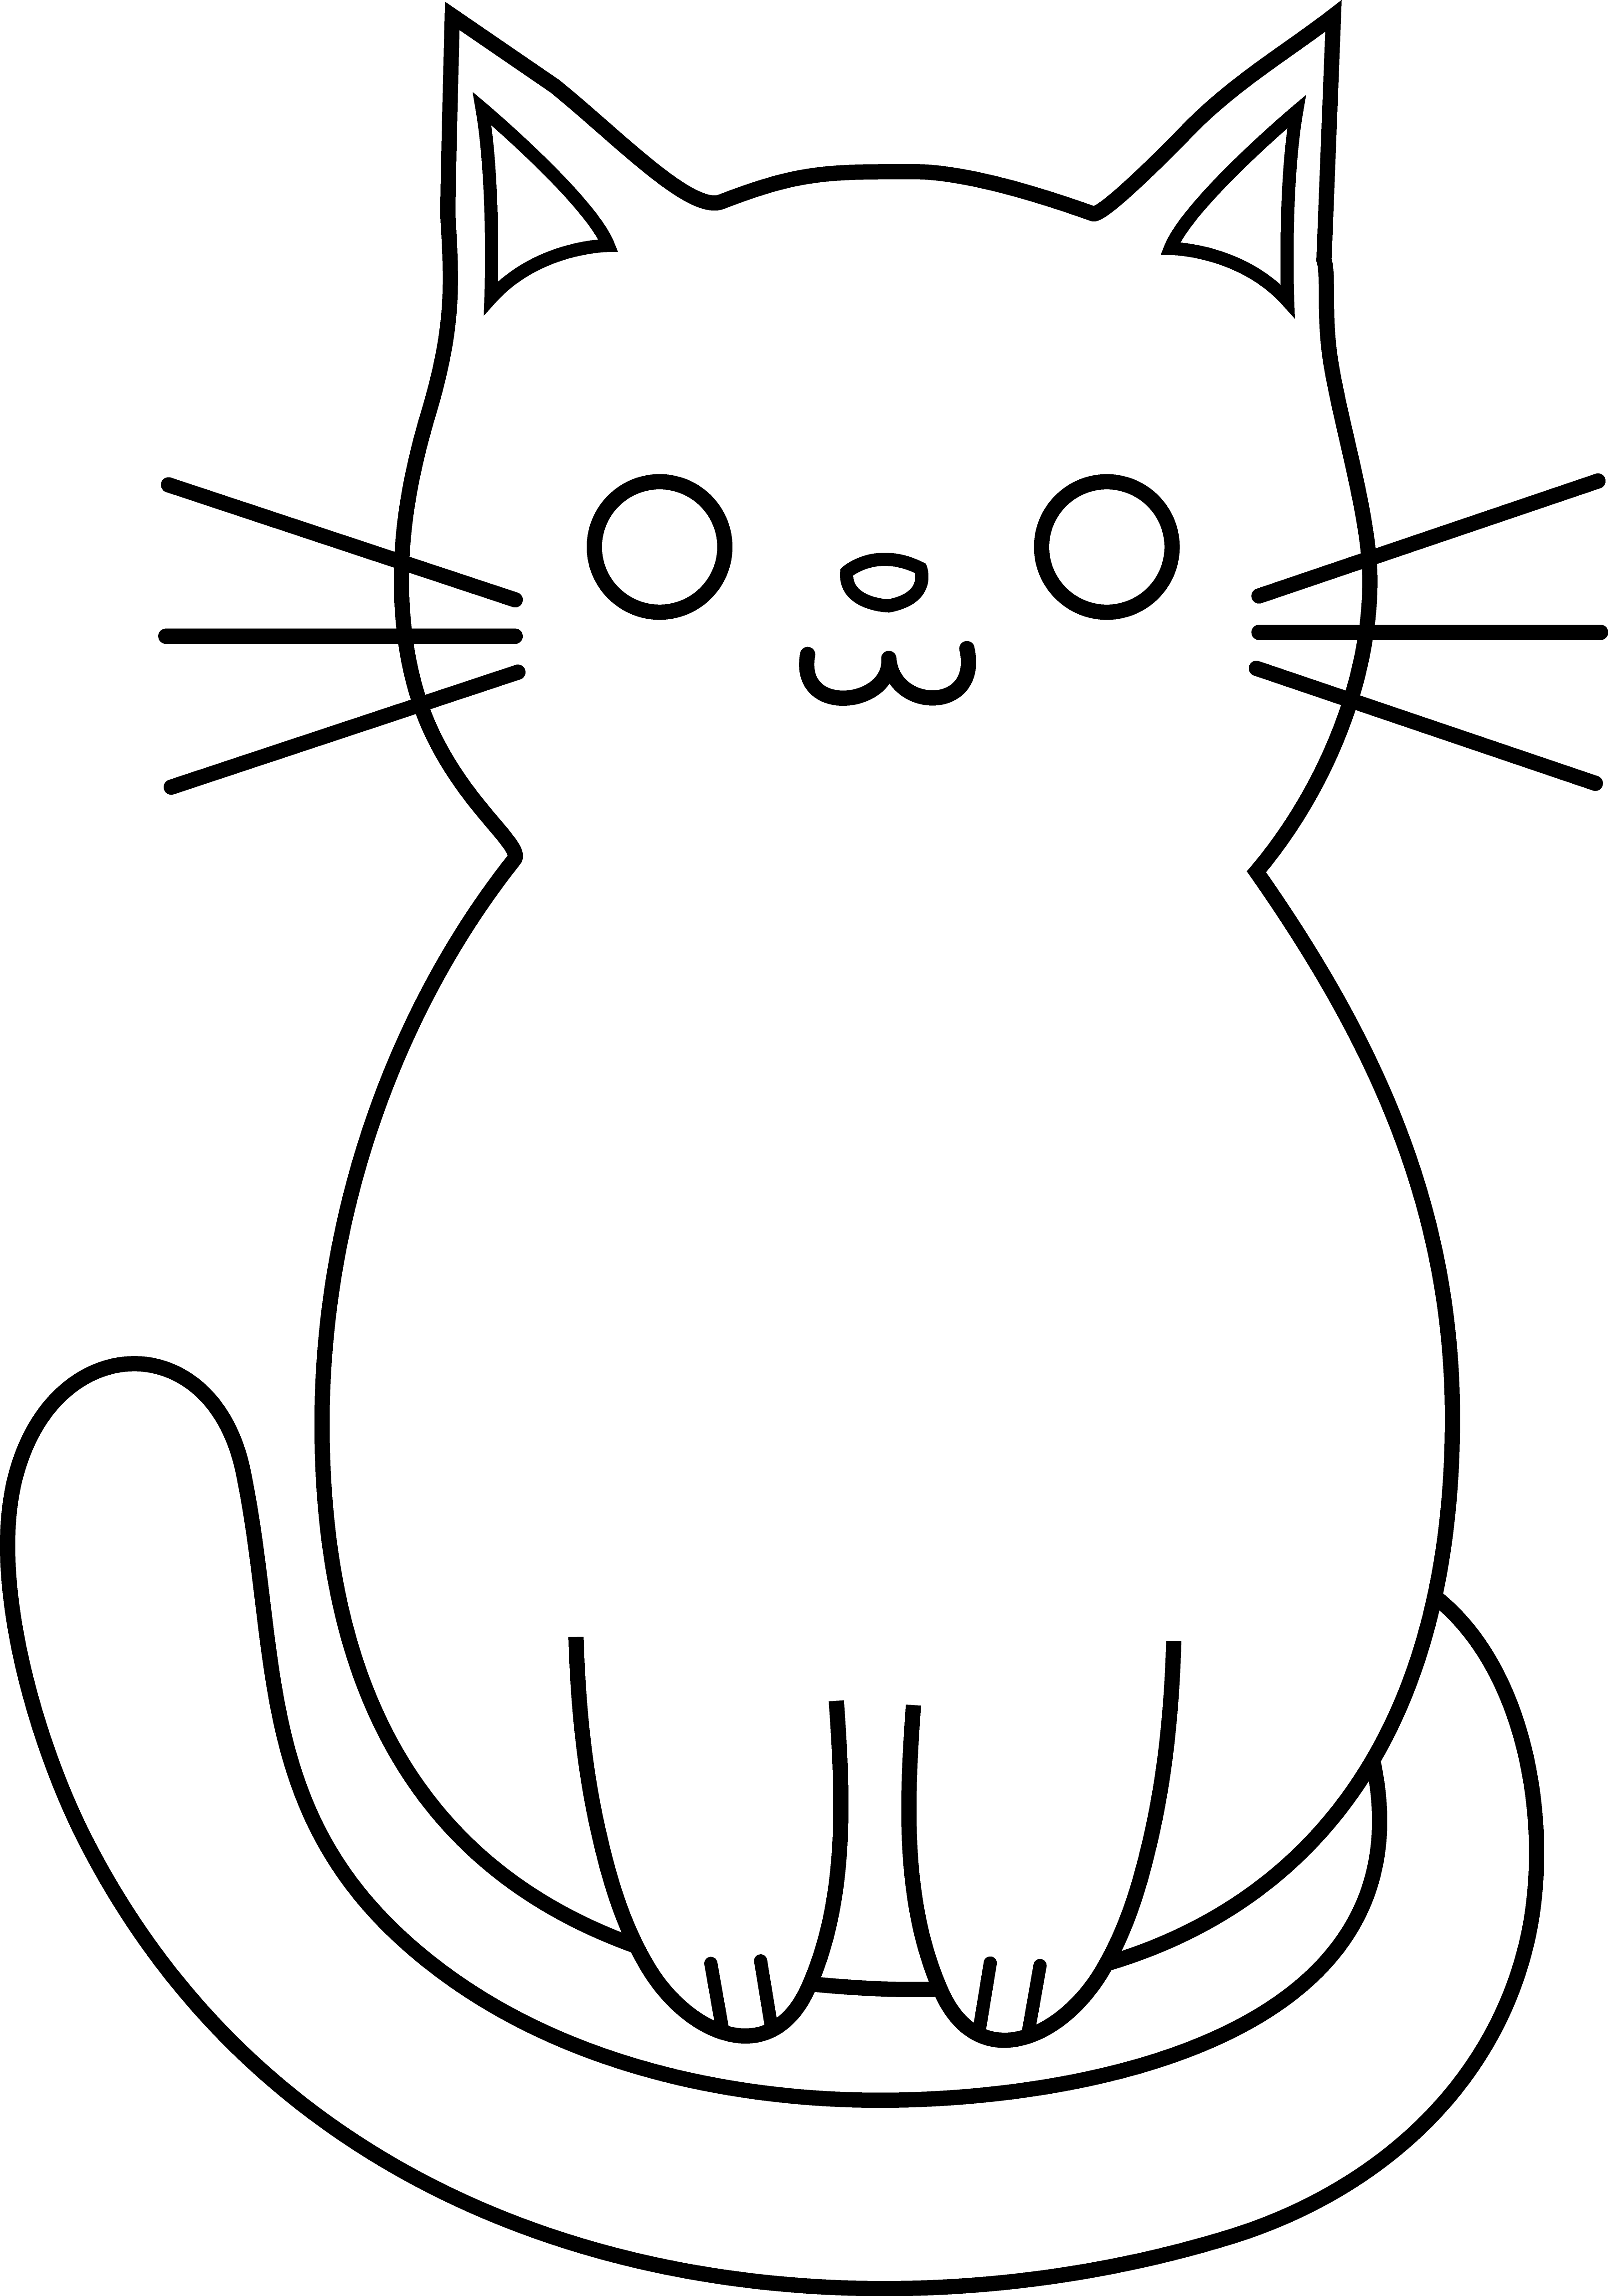 Look after cayt clipart black and white image stock Free Kitty Cat Clipart, Download Free Clip Art, Free Clip Art on ... image stock